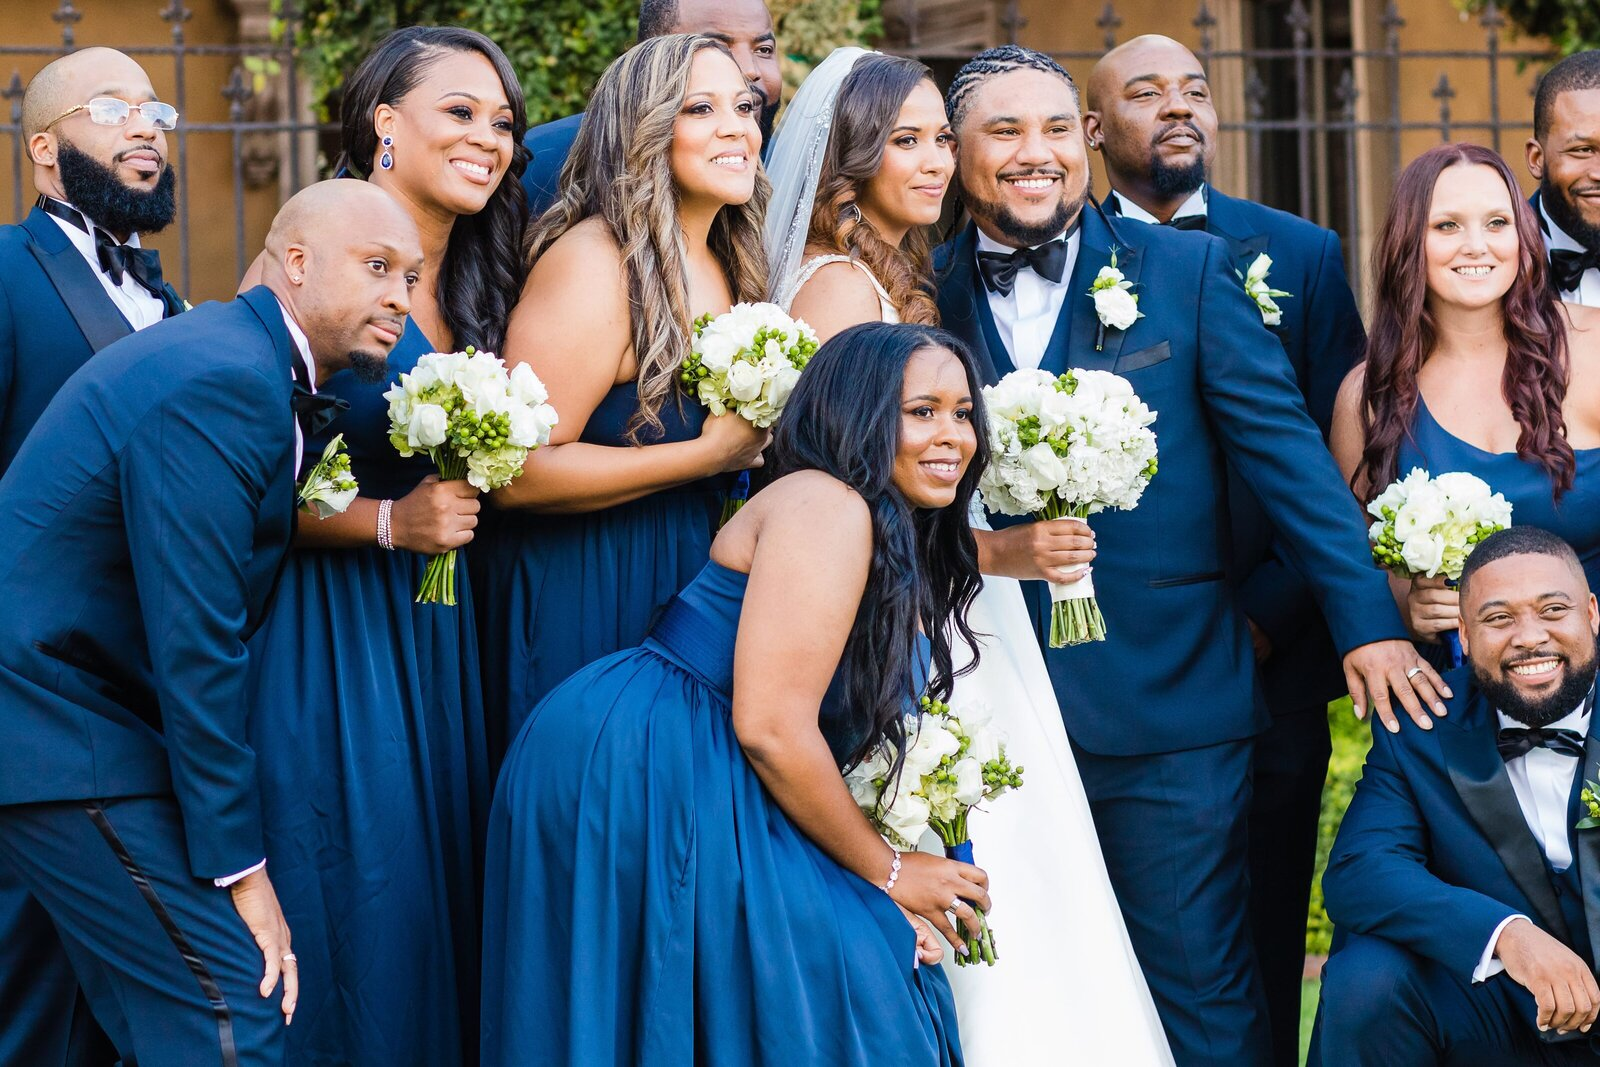 bridal-party-blue-suits-blue-dresses